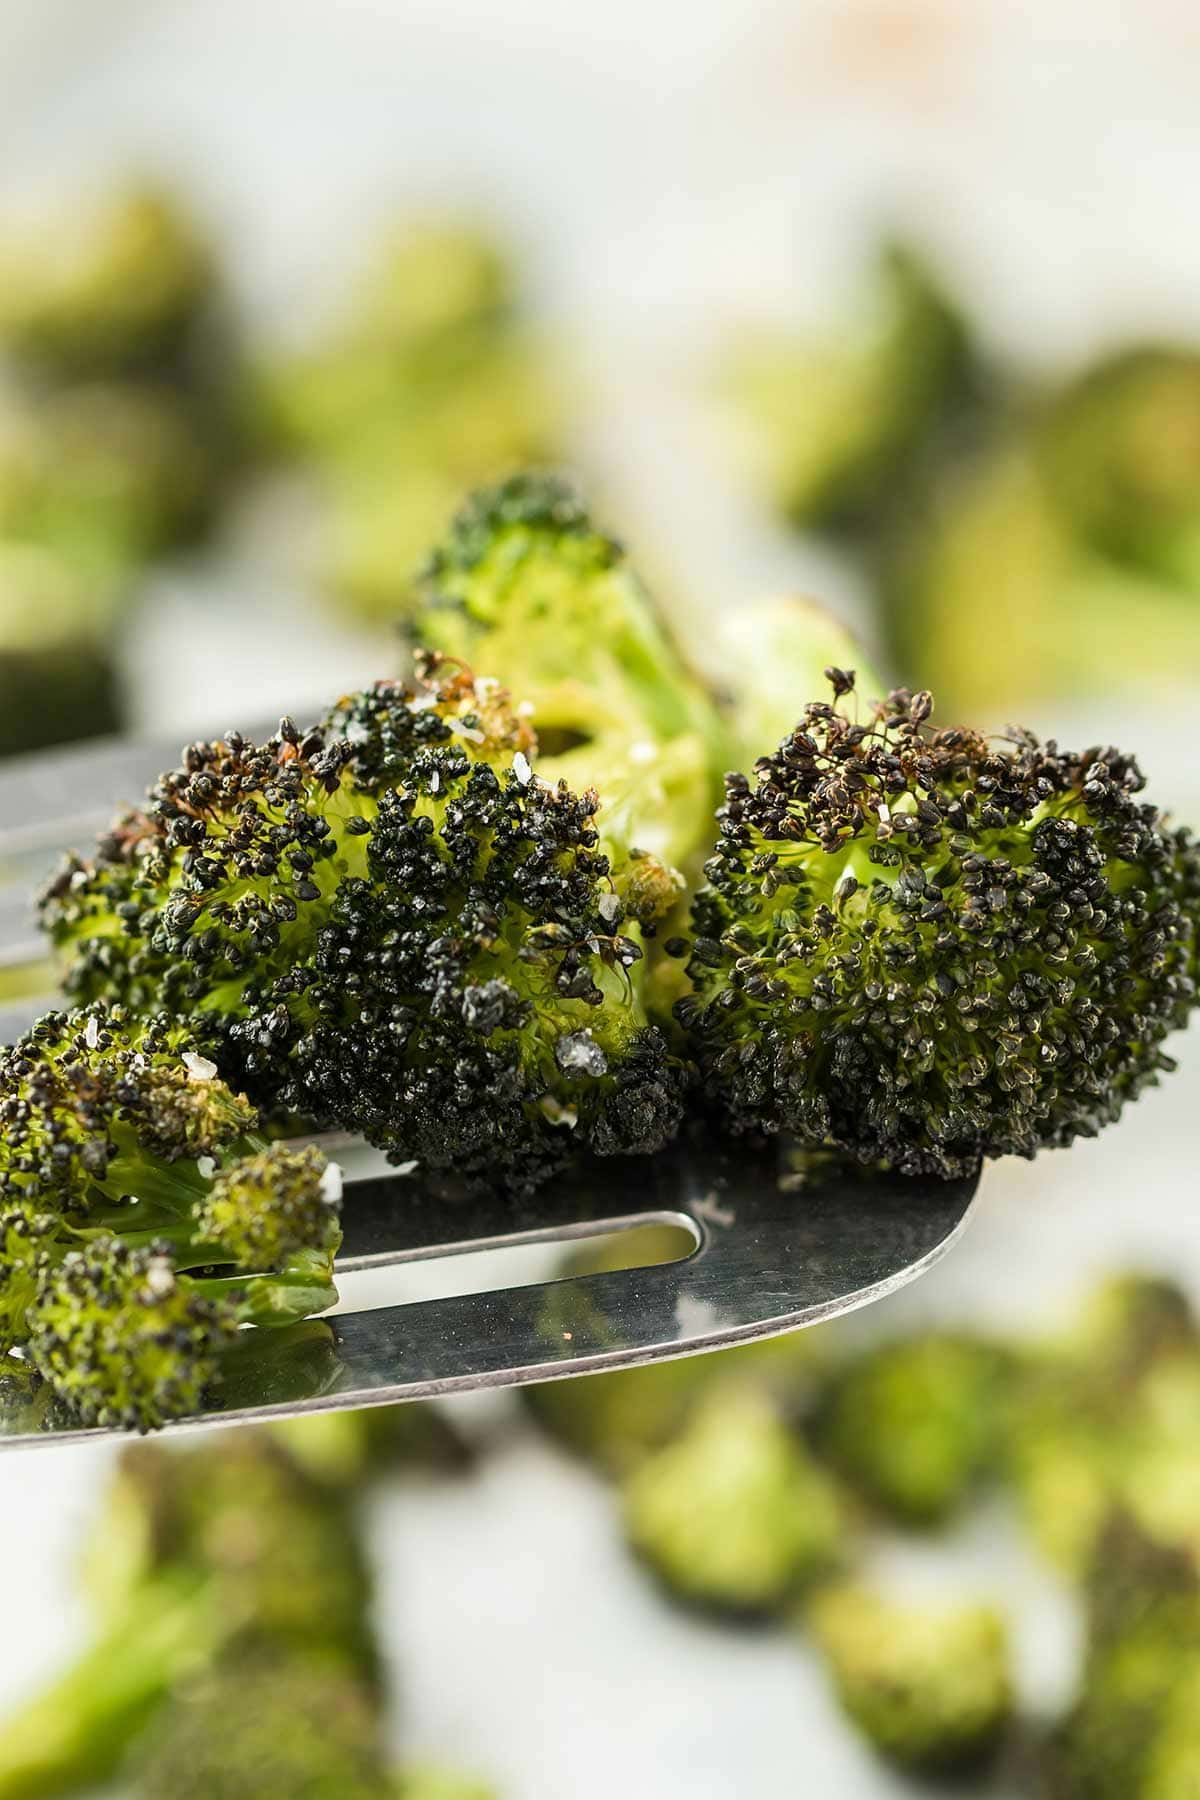 Close up of roasted broccoli on a silver spatula.